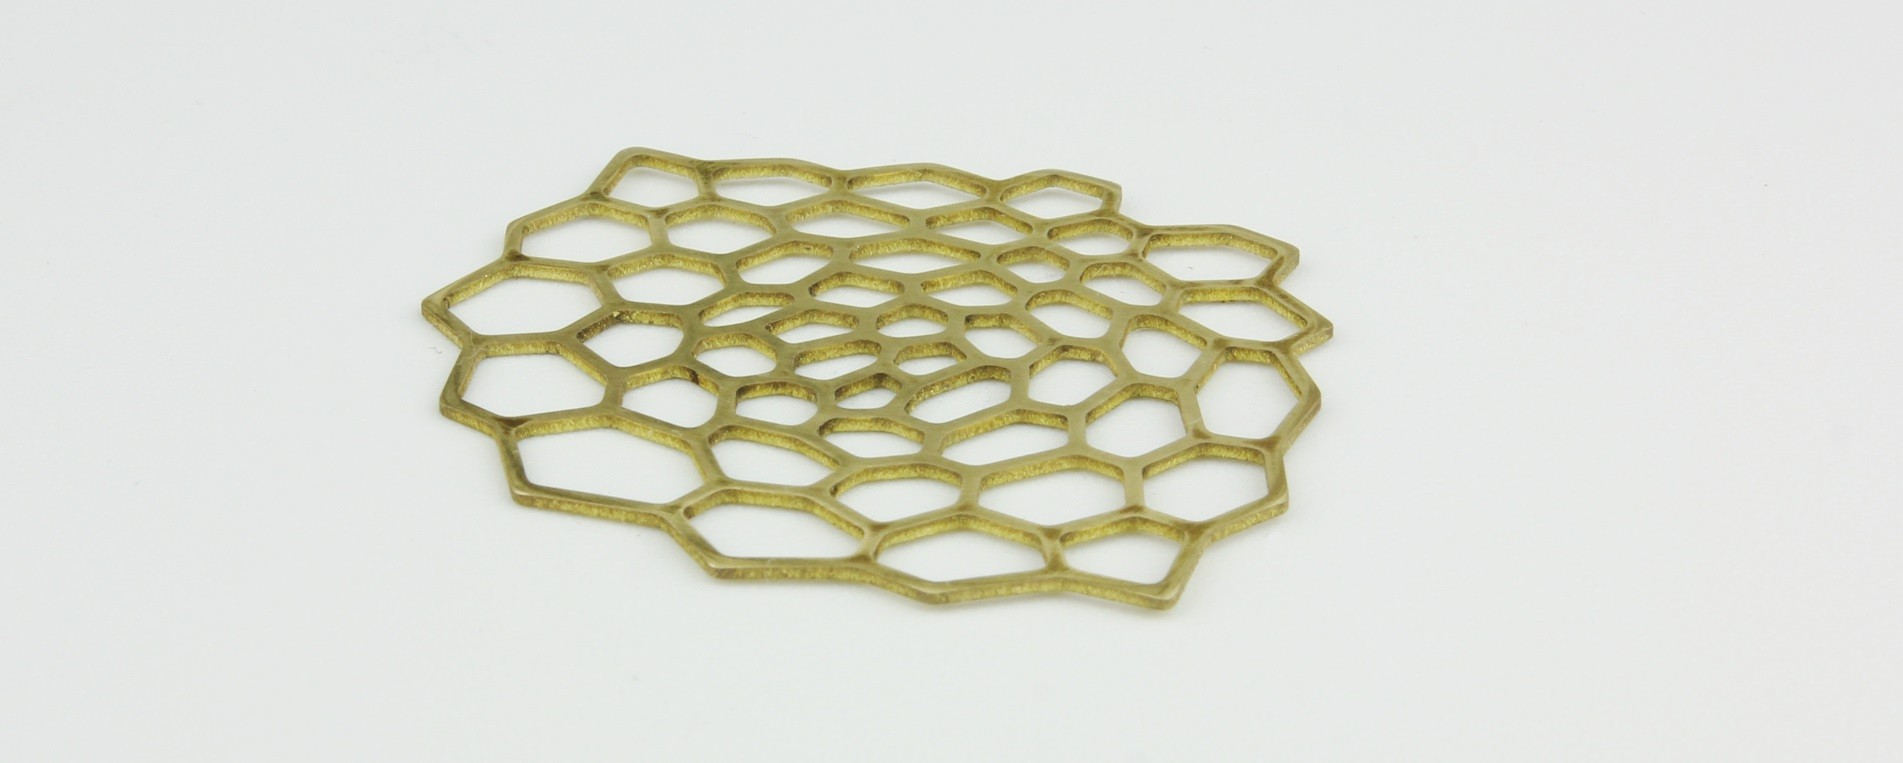 Laser cutting of jewelry decorations of brass material 1 mm thick